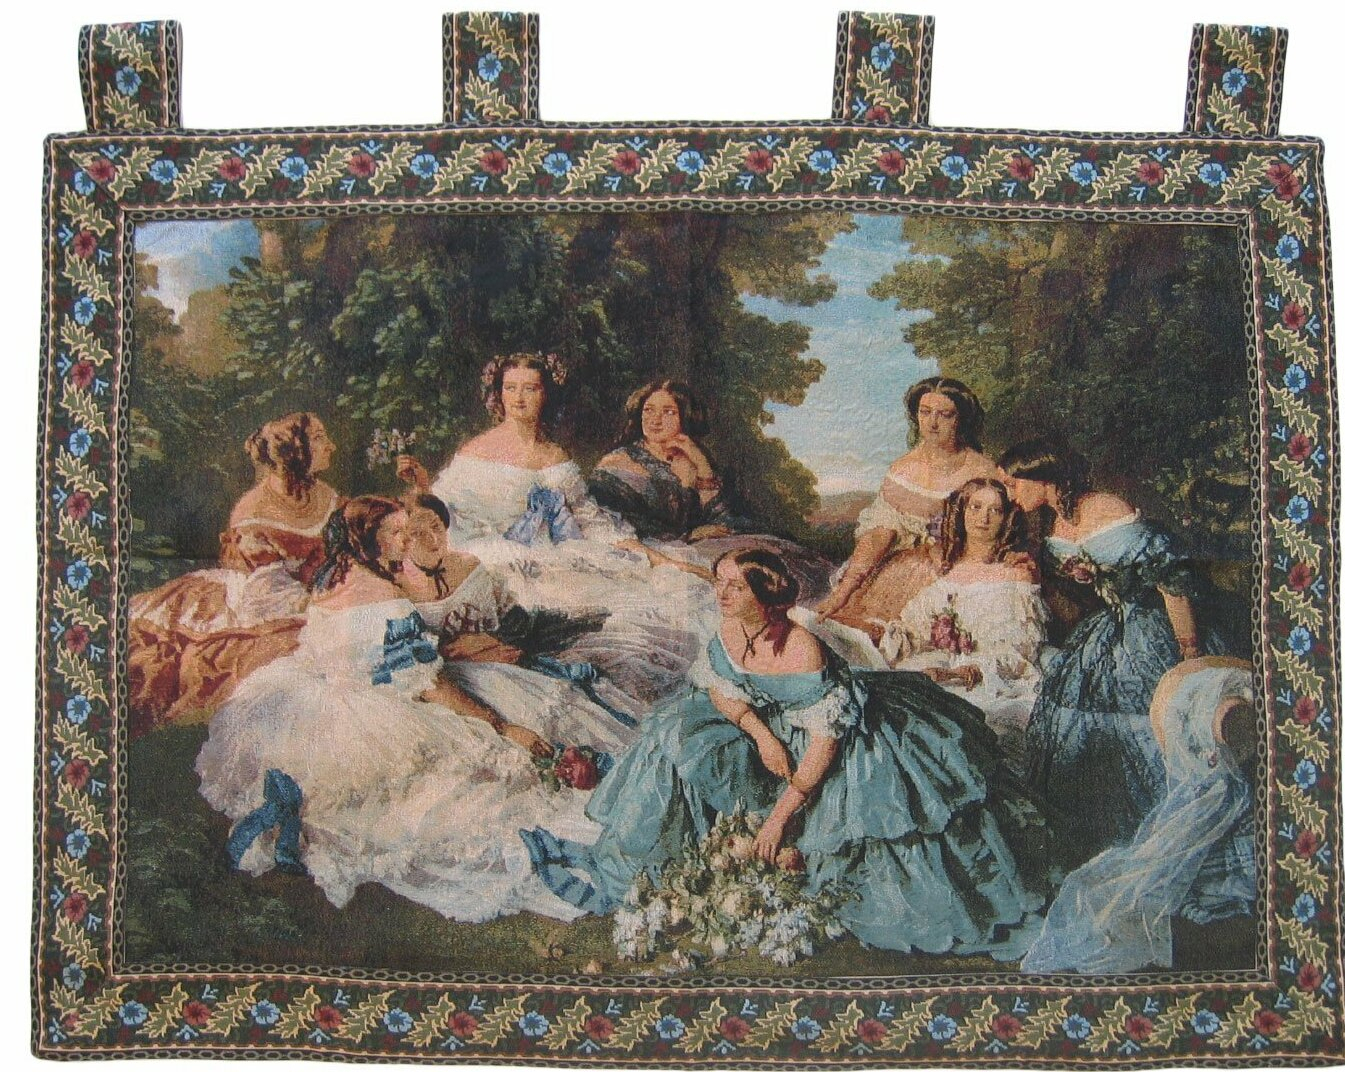 Classic French Rococo Woven Tapestry Pertaining To Most Popular Blended Fabric Breeze Of Admiration Woven Tapestries (View 2 of 20)